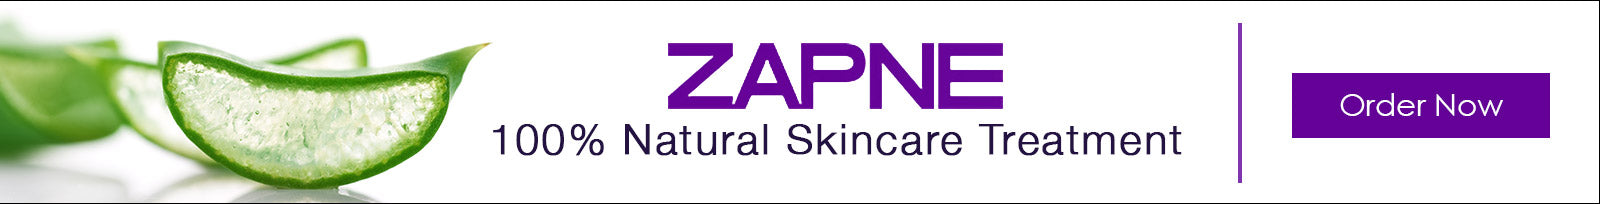 ZAPNE 100% Natural Treatment